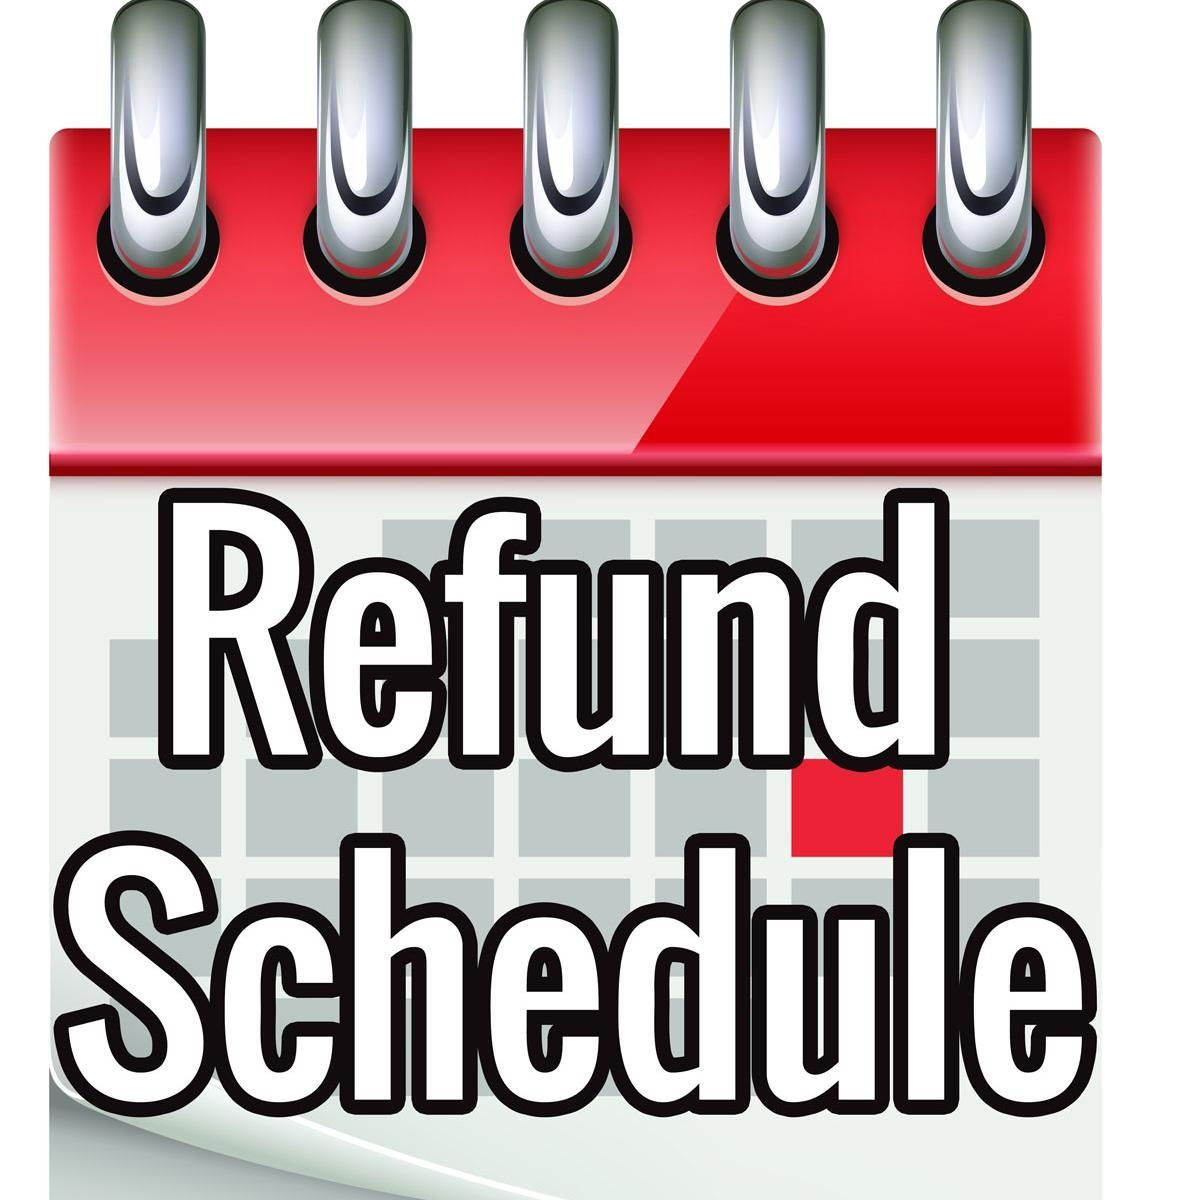 Refund Schedule Refundschedule Twitter